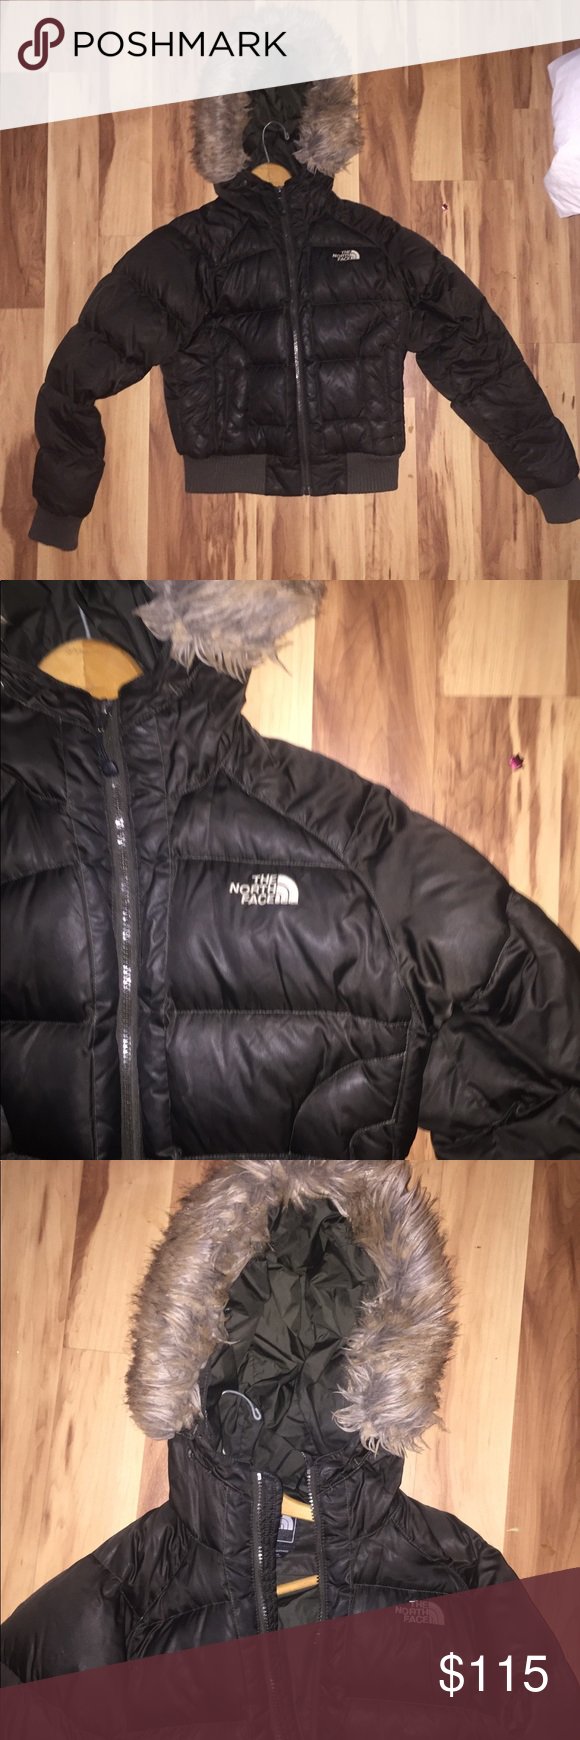 North Face Cropped W Fur Winter Jacket In Really Good Condition The Fur Is Just Slightly Matted The Color Is A Dark C Winter Jackets Jackets Clothes Design [ 1740 x 580 Pixel ]